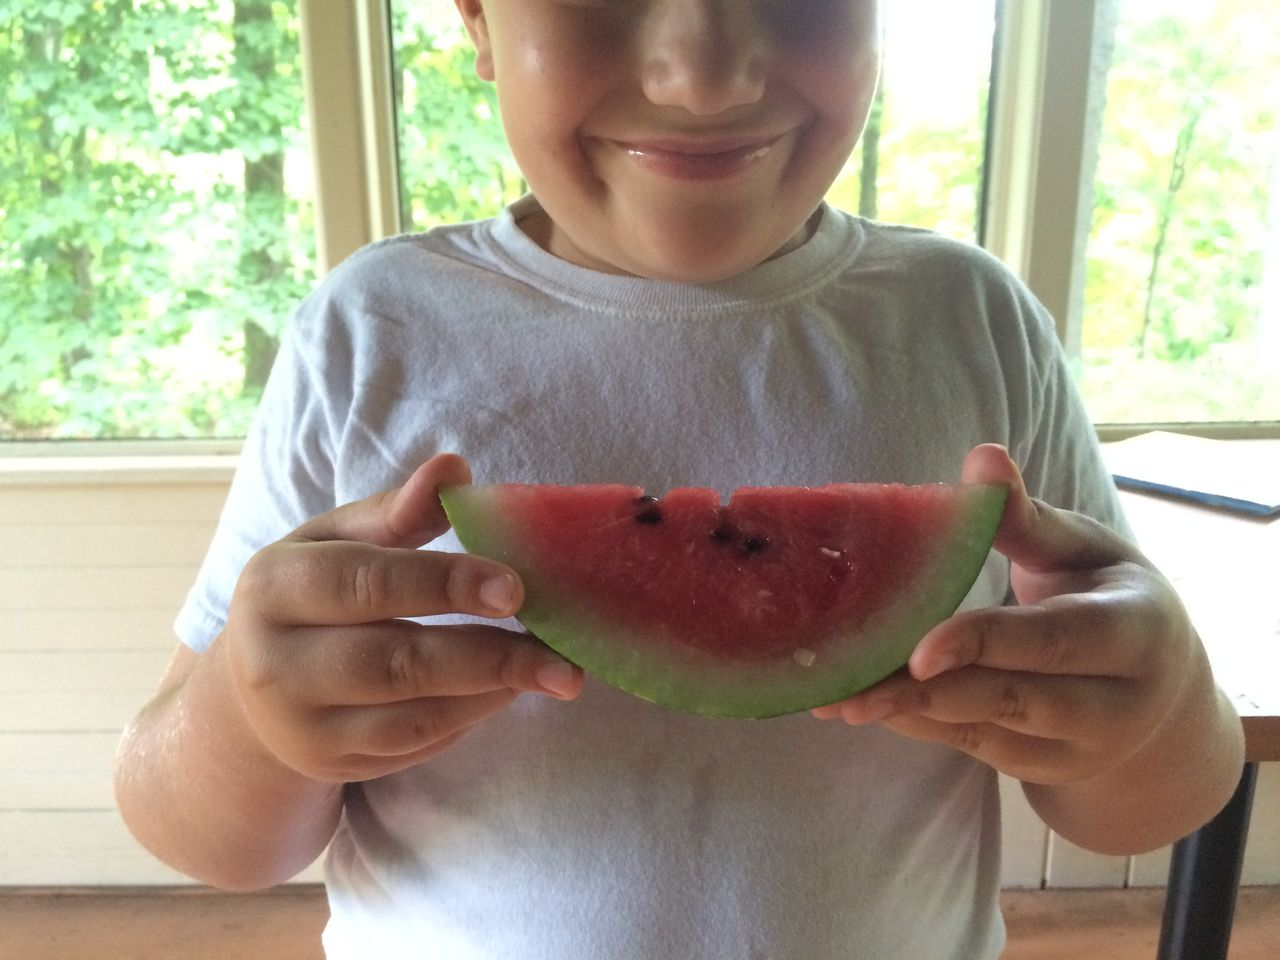 Midsection of happy boy holding watermelon slice at home